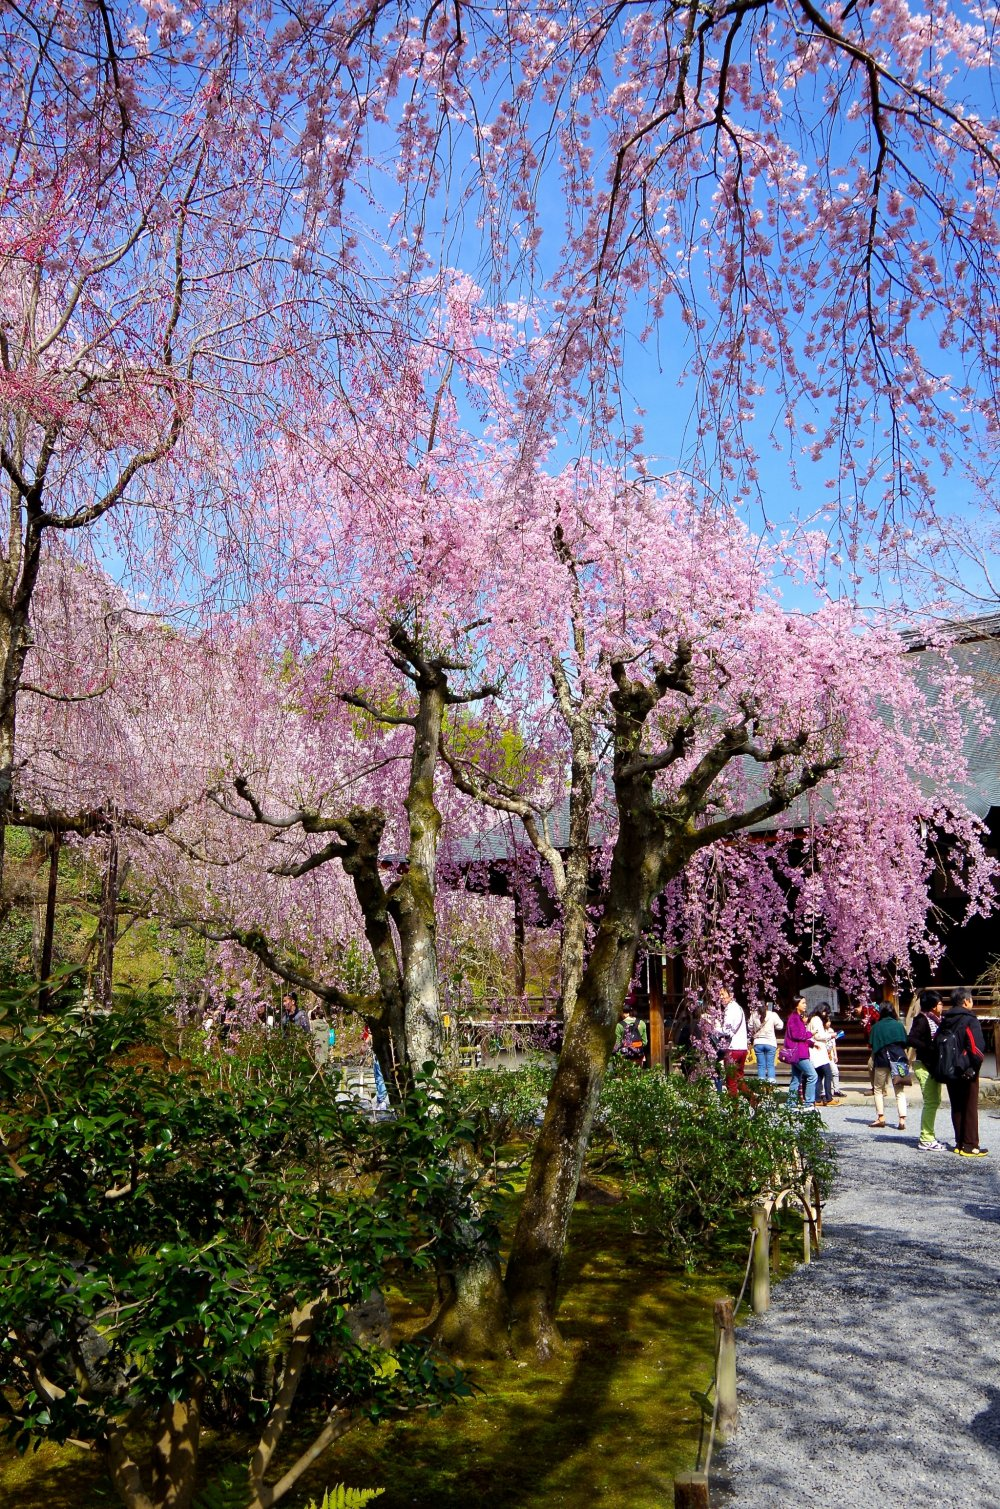 Weeping cherry trees are delicate and graceful